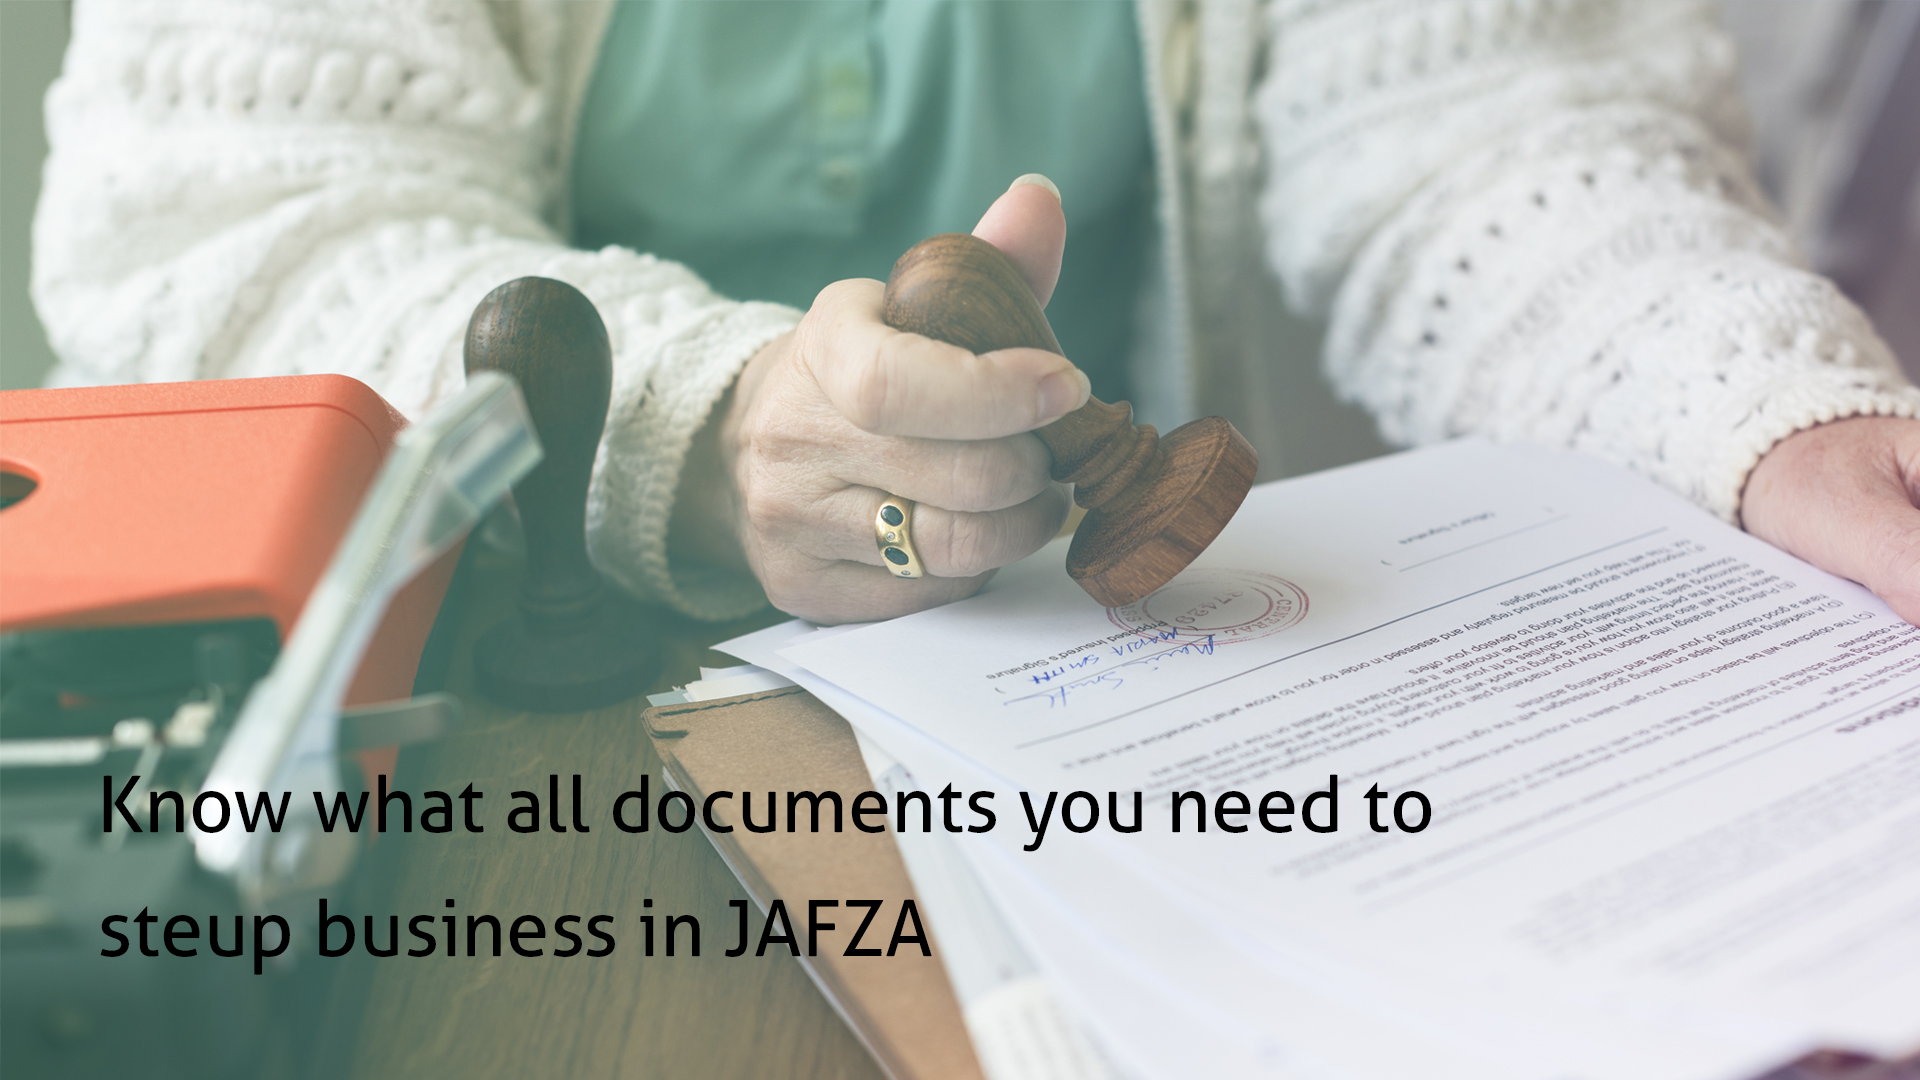 Know what all documents you need to steup business in JAFZA